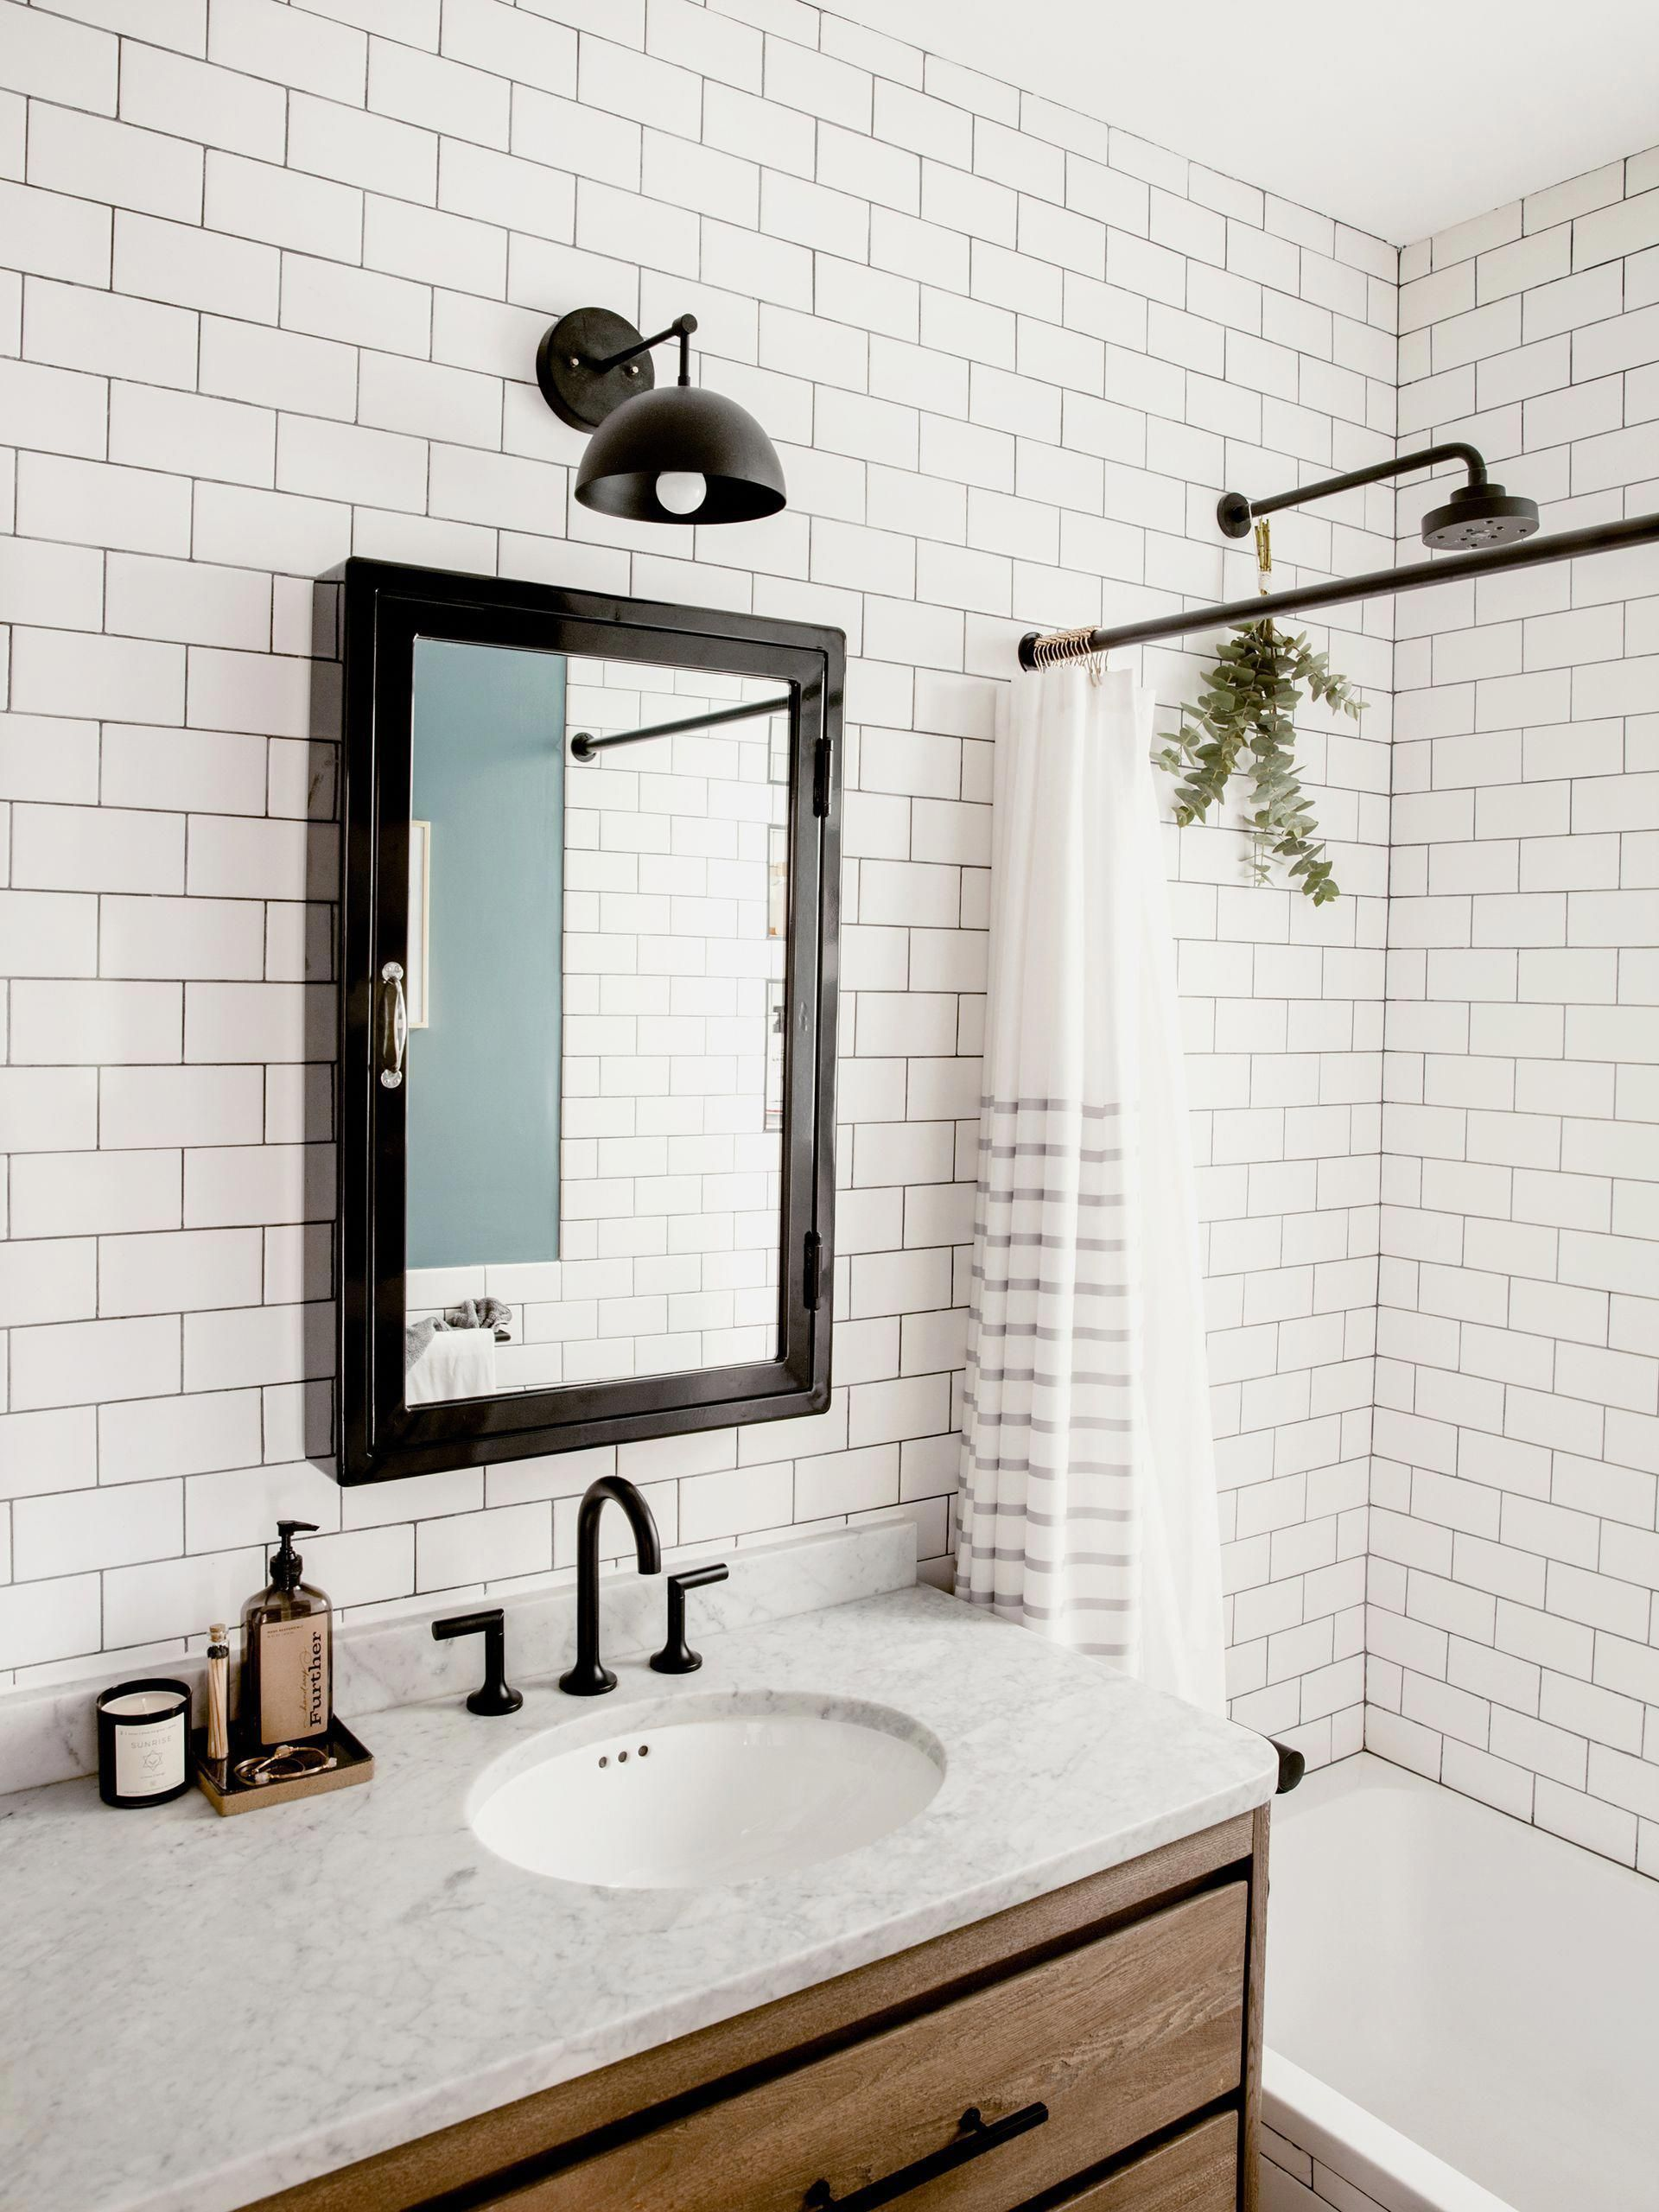 Photo of A bathroom has white subway tile and dark grout. A black-and-walnut vanity has b…